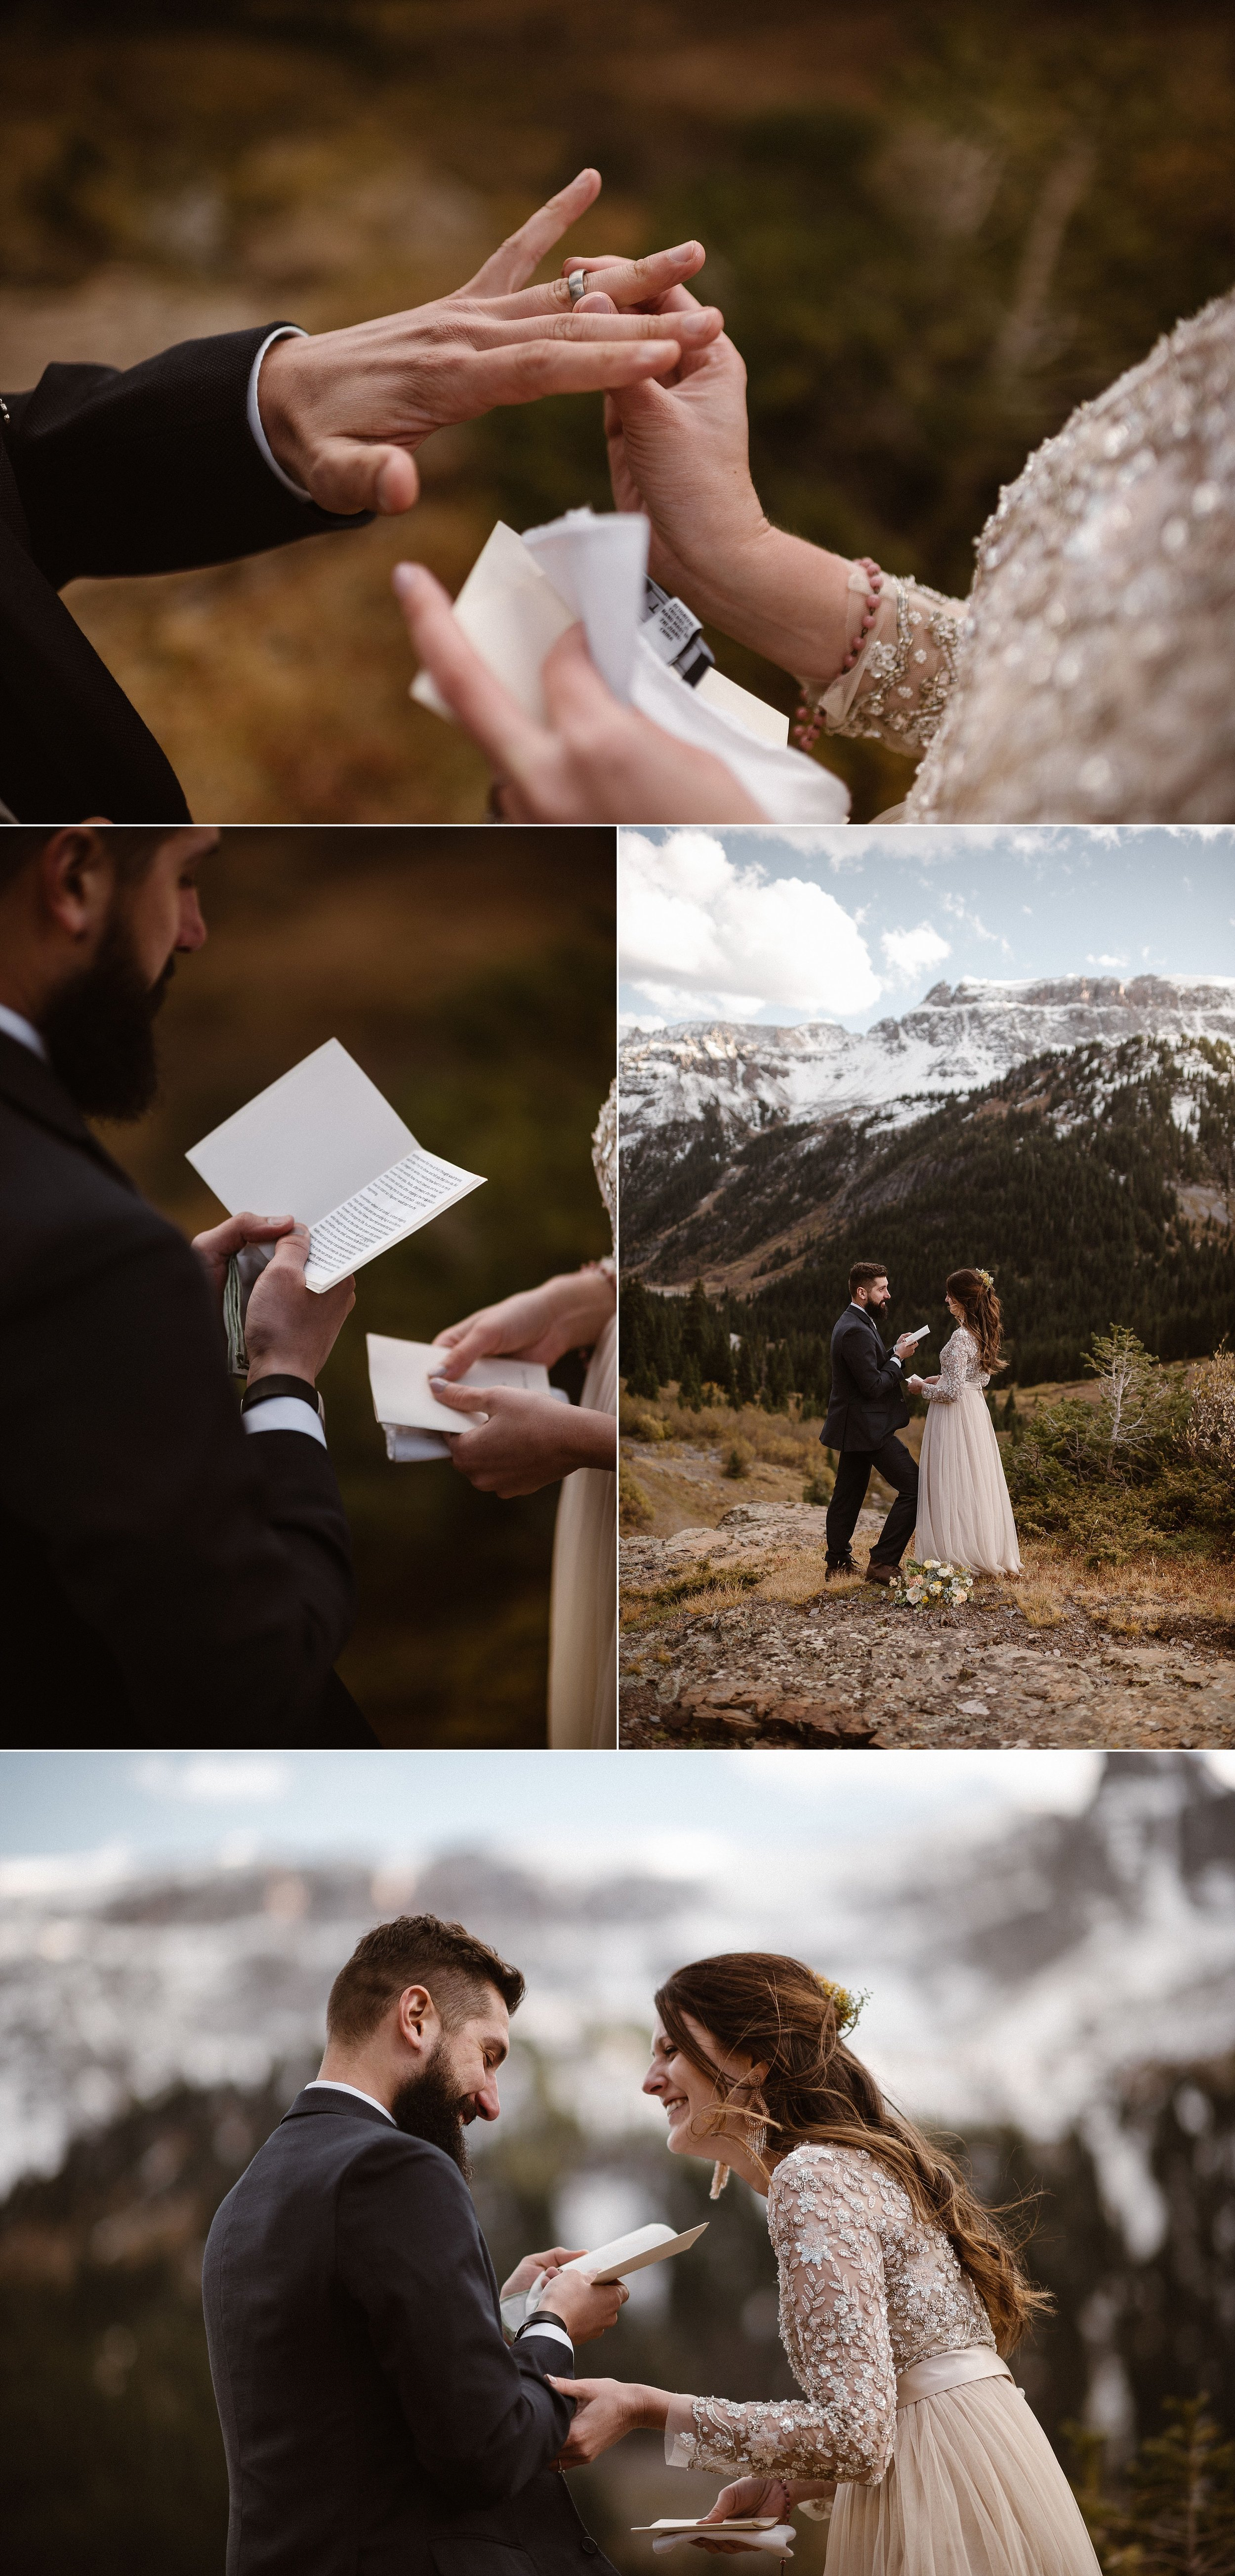 Sealing her words with a symbol of love, a solid white gold wedding band, Jen slipped her husband's new ring over his finger and he began his vows with a joke reminding Jen of the first thing she ever fell in love with - her husband's sense of humor. Photos of this romantic autumn elopement in Ouray, Colorado by intimate wedding photographer Maddie Mae.